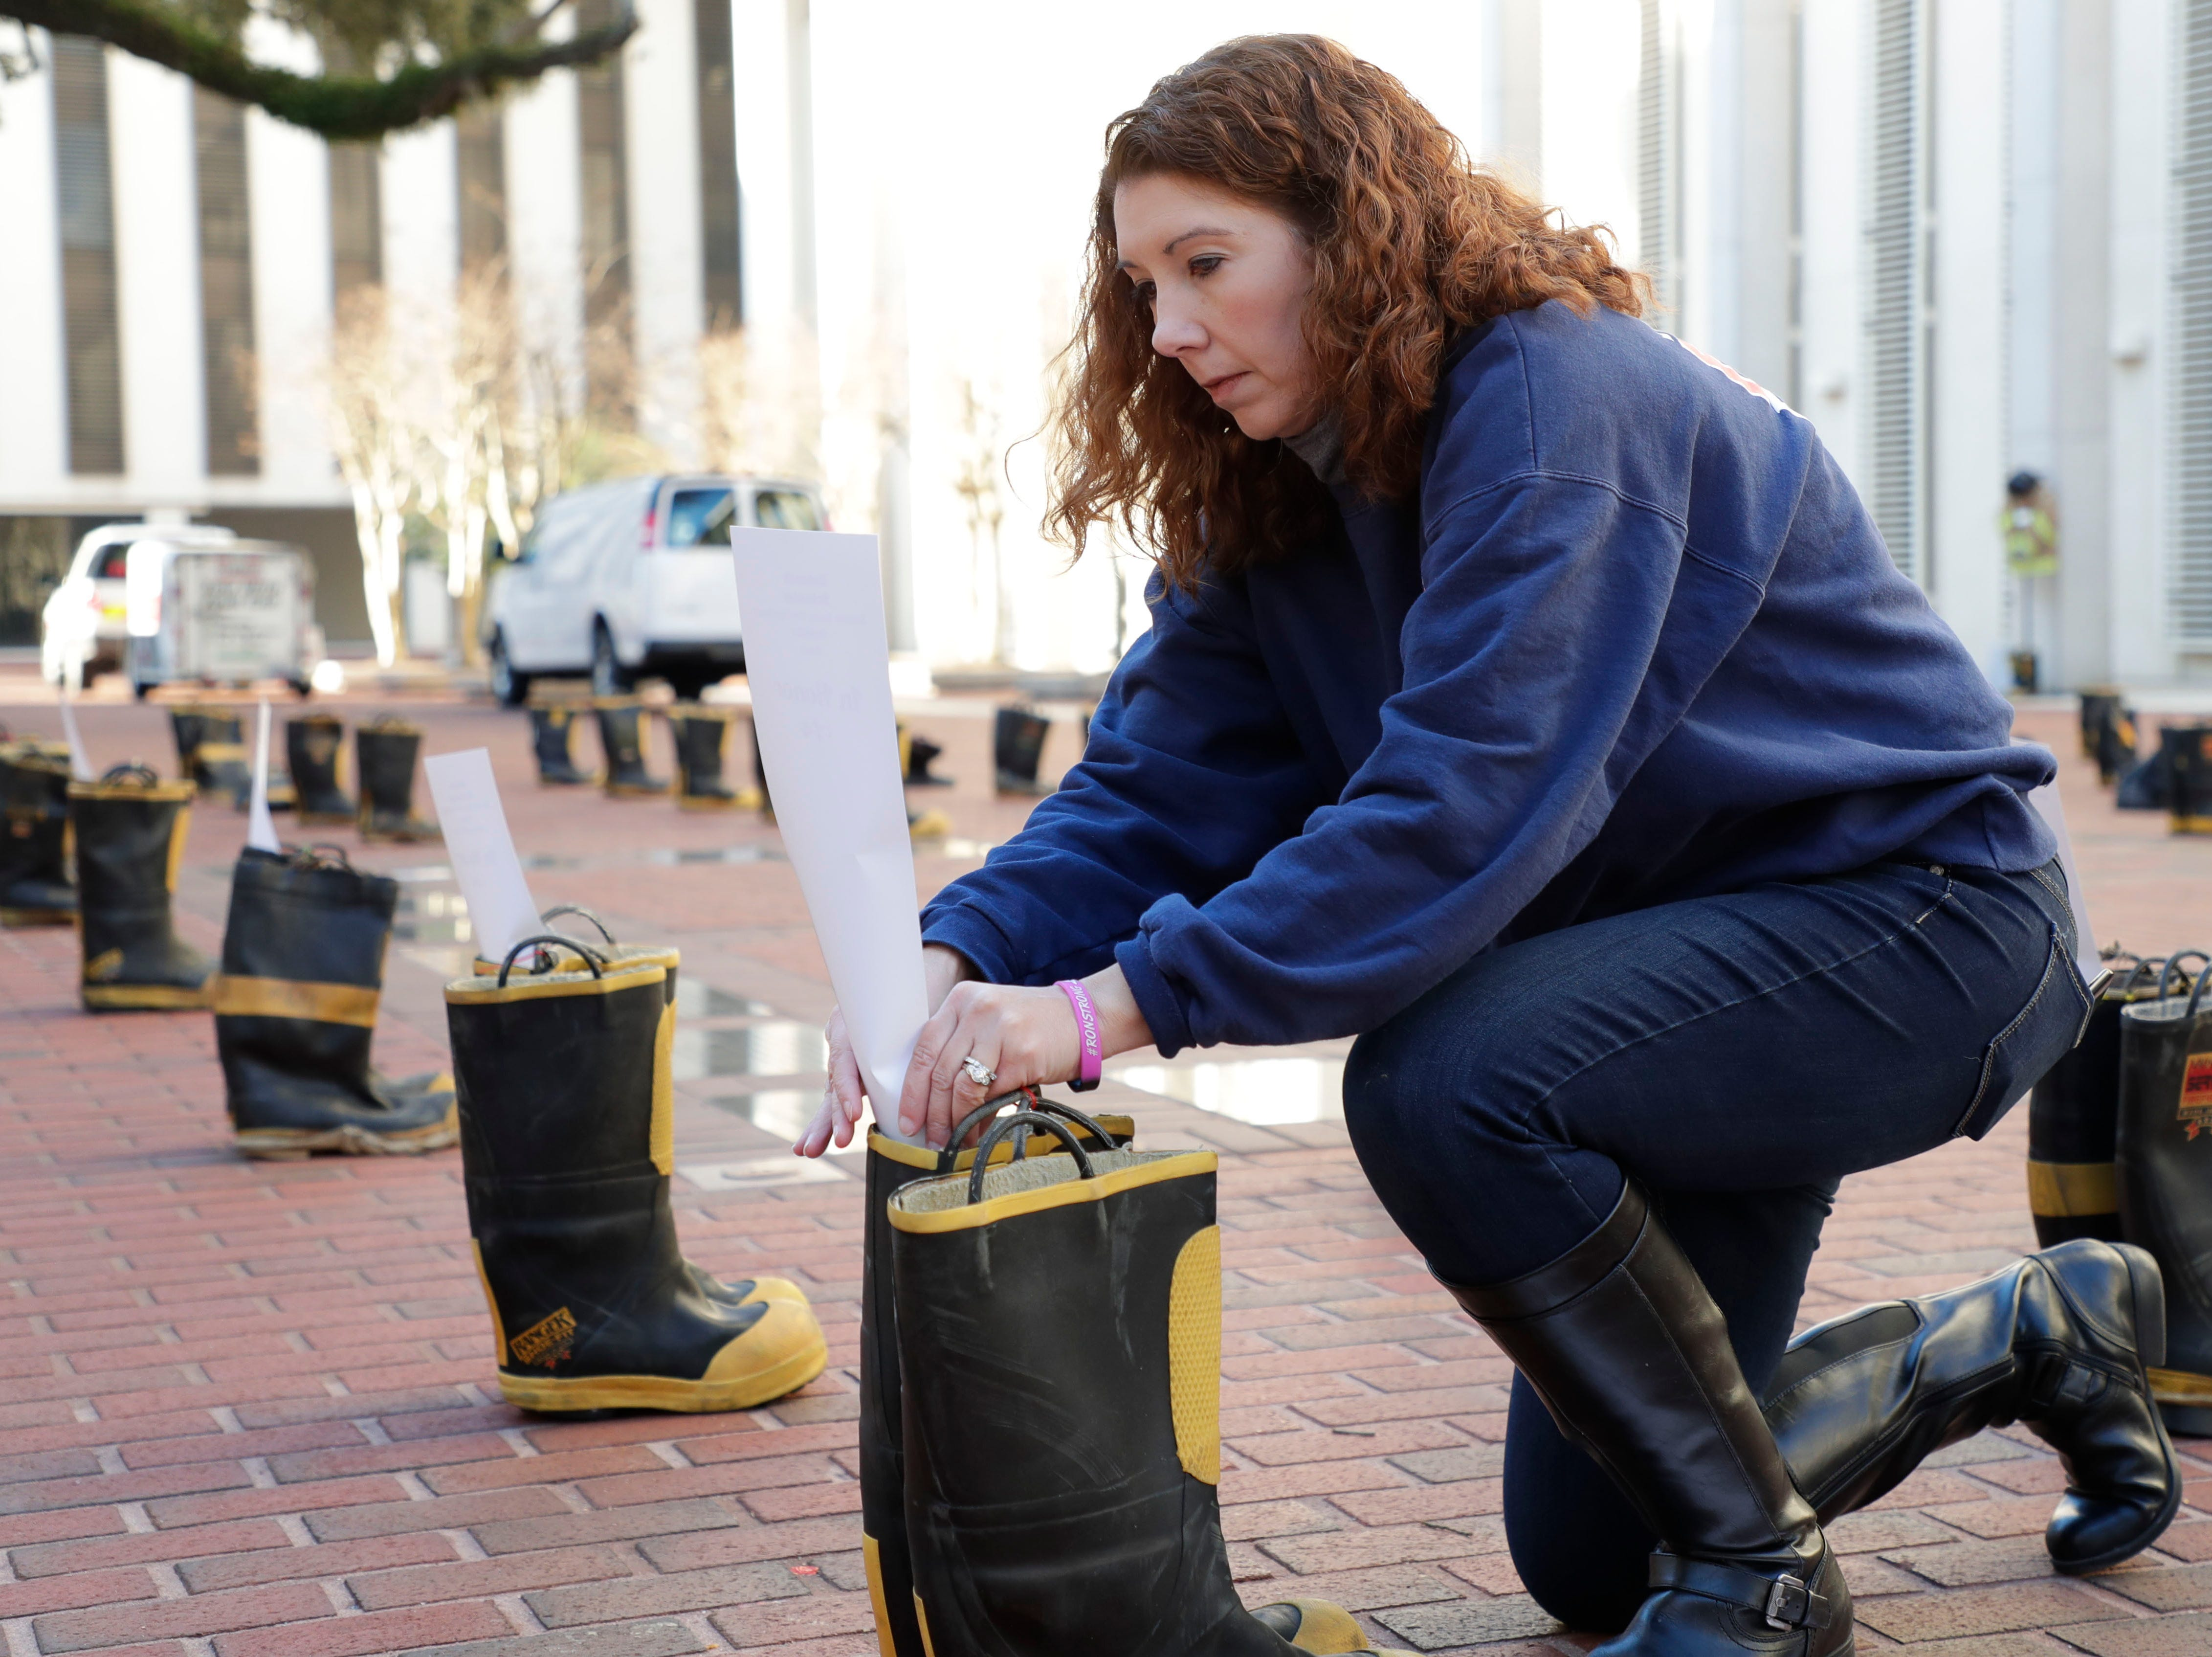 Ashley Rabon, a mother of three who lost her husband who was a firefighter with the Jacksonville Beach Fire Department when he lost his battle to appendix cancer, places a card honoring a fallen firefighter. Firefighters and their families from around the state create a display at the Capitol of 500 pairs of boots in honor of firefighters who lost their battle or are battling with cancer caused from smoke inhalation and carcinogens Thursday, March 7, 2019. The state of Florida is one of five states in the country that does not have a bill acknowledging cancer is a job-related illness.